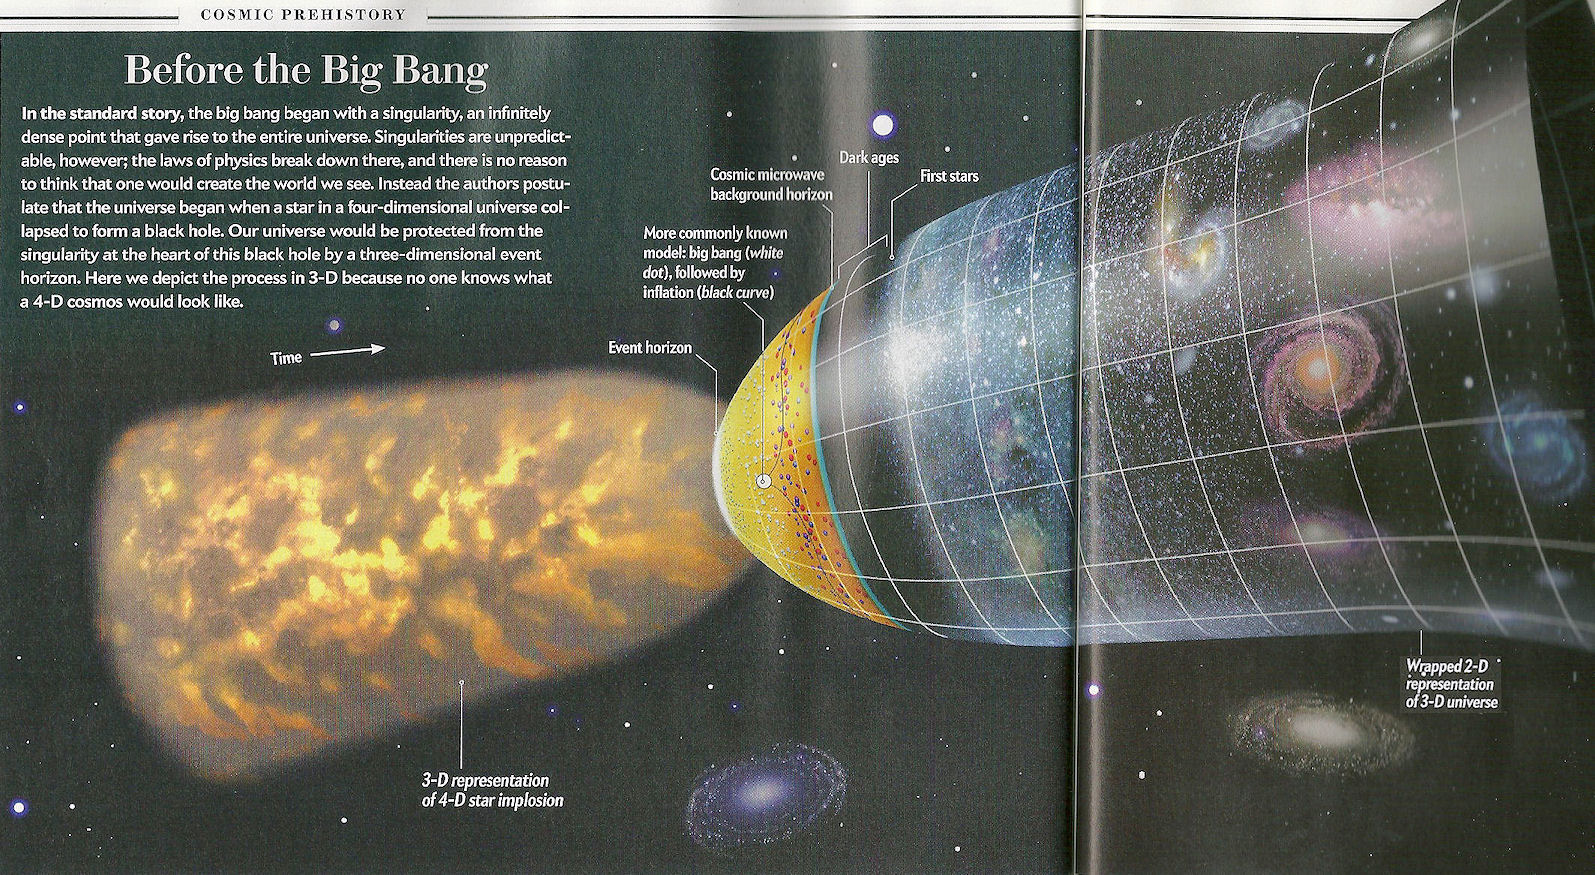 a description of the big bang as a cosmological model of the universe Introduction the inflationary universe according to the theory of inflation, the early universe expanded exponentially fast for a fraction of a second after the big bang.